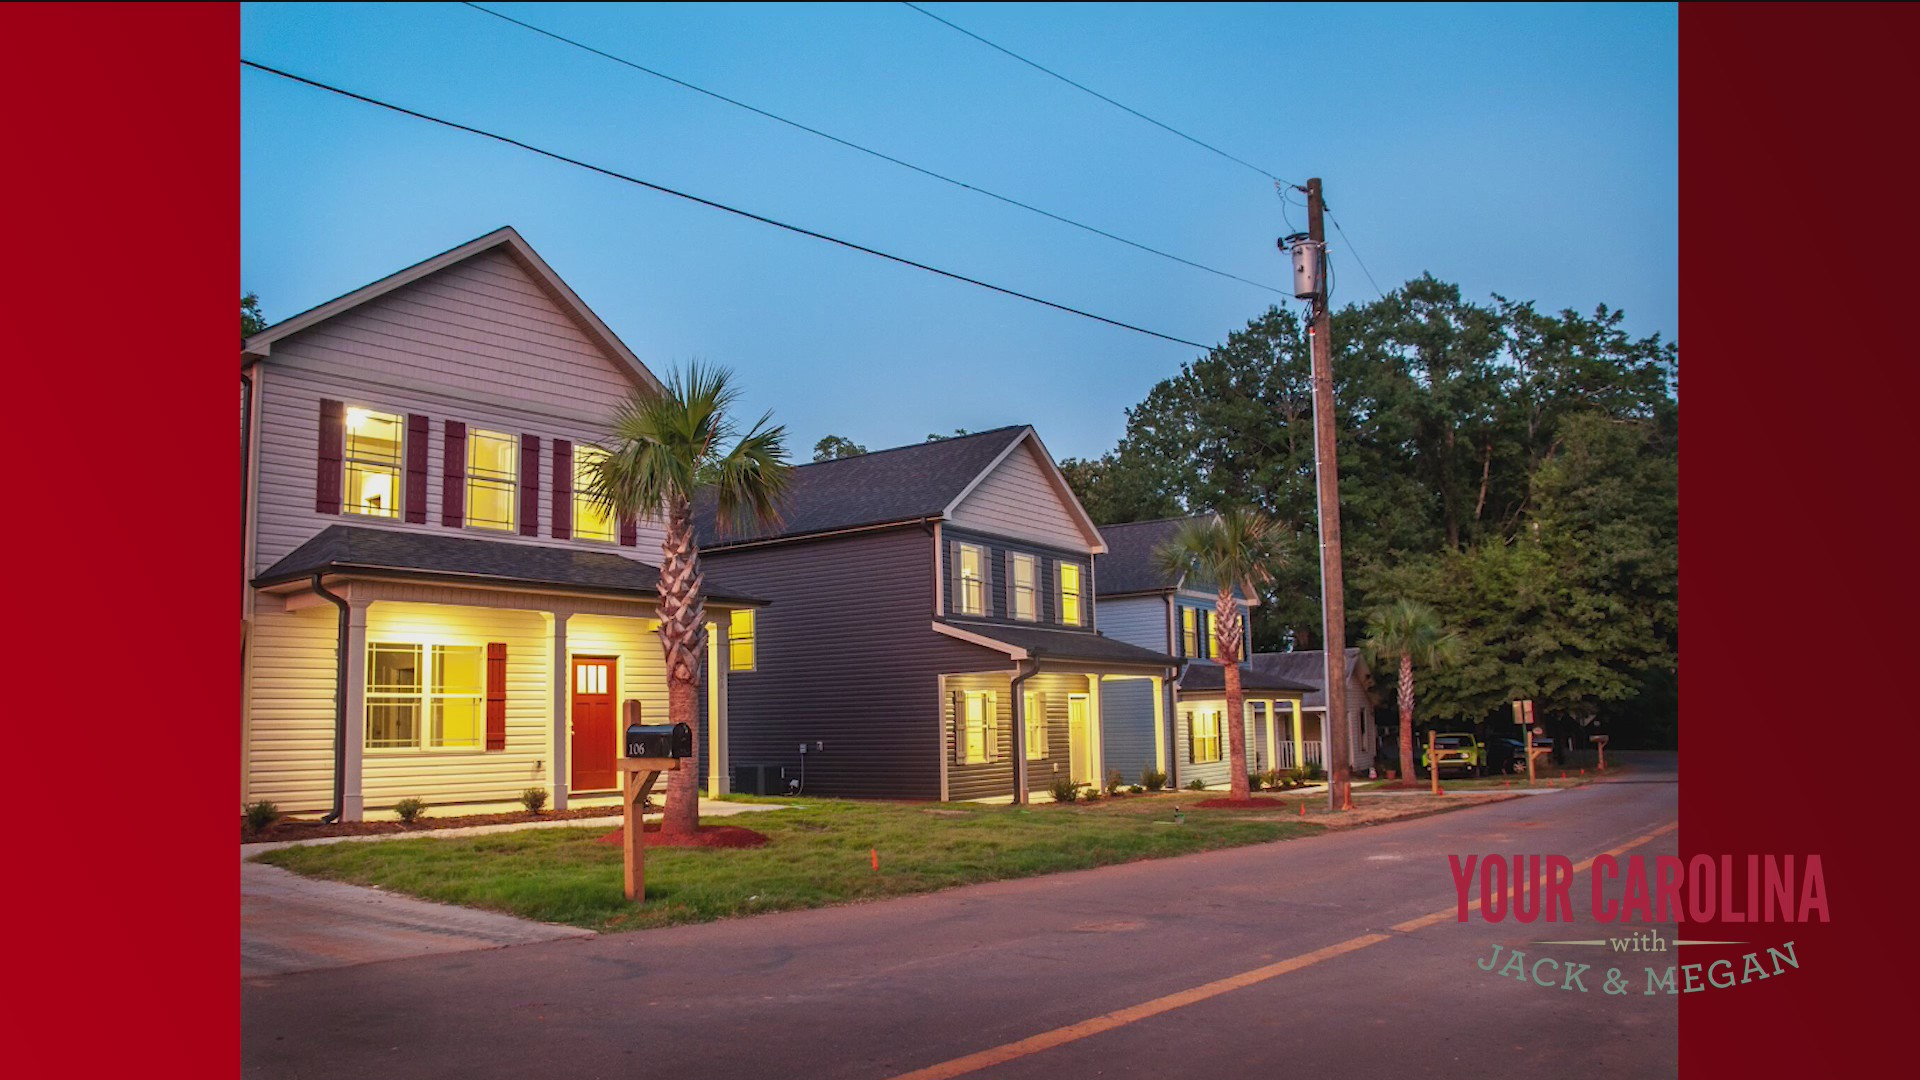 Apex Development - Developing Affordable Housing In The Upstate